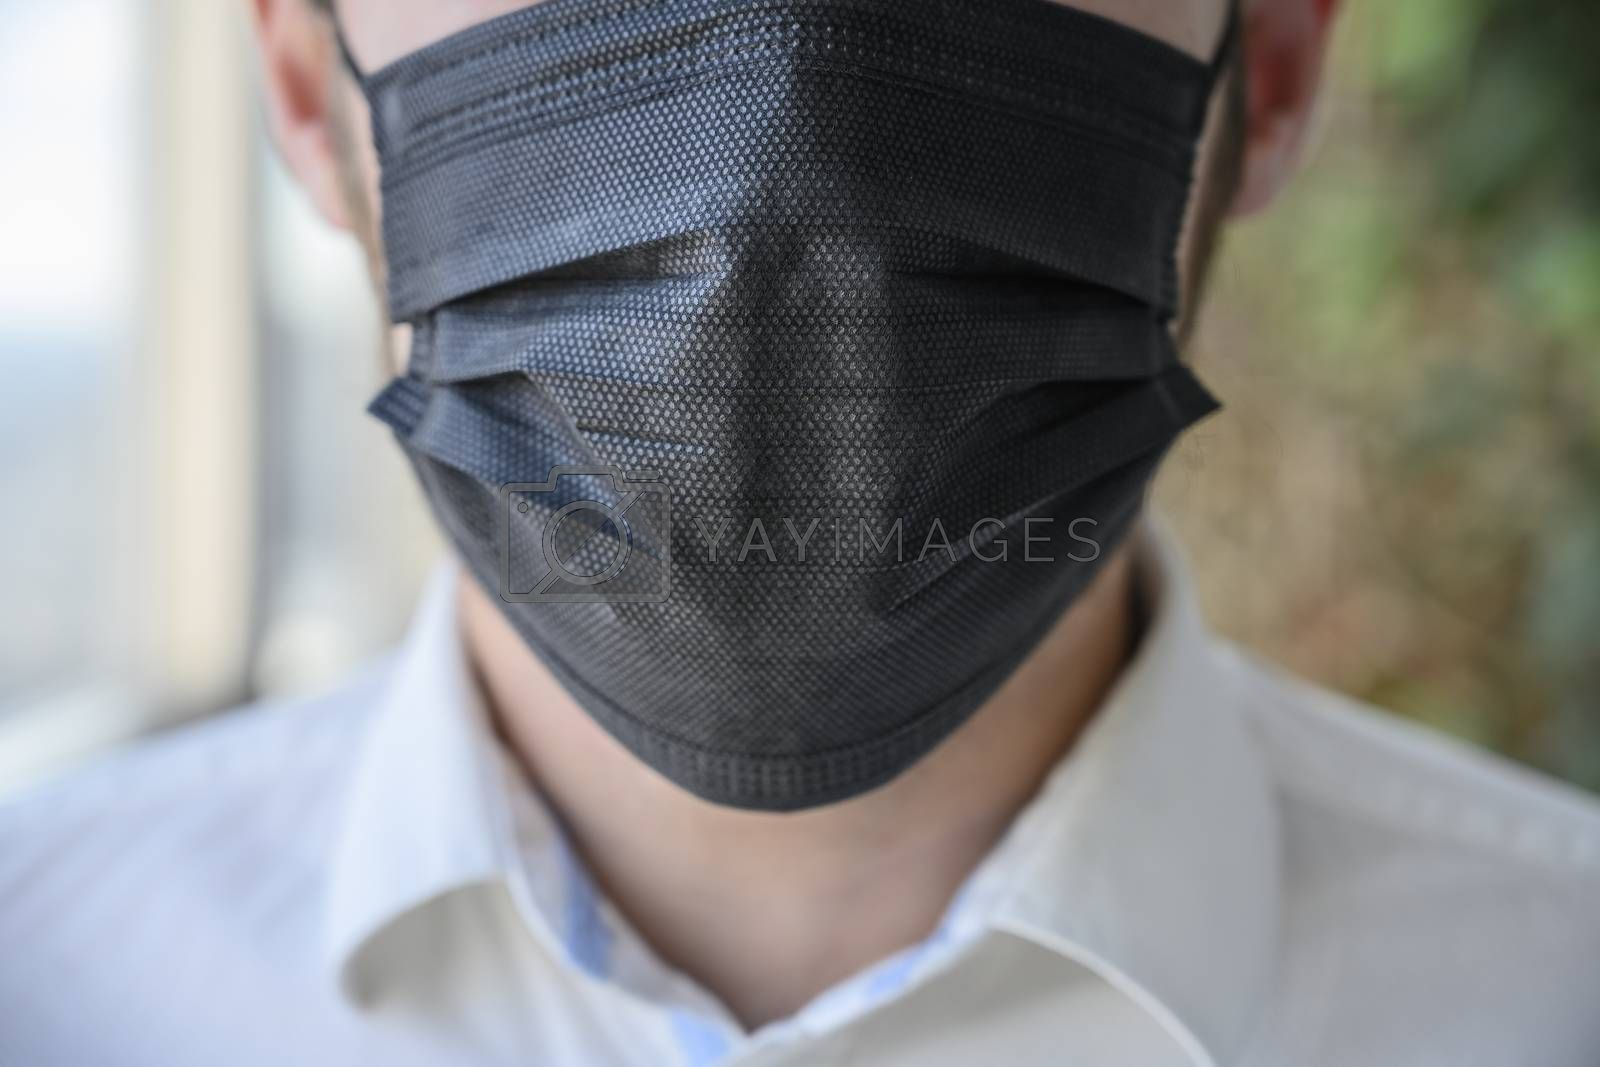 A man wearing a black respiratory mask on his face.